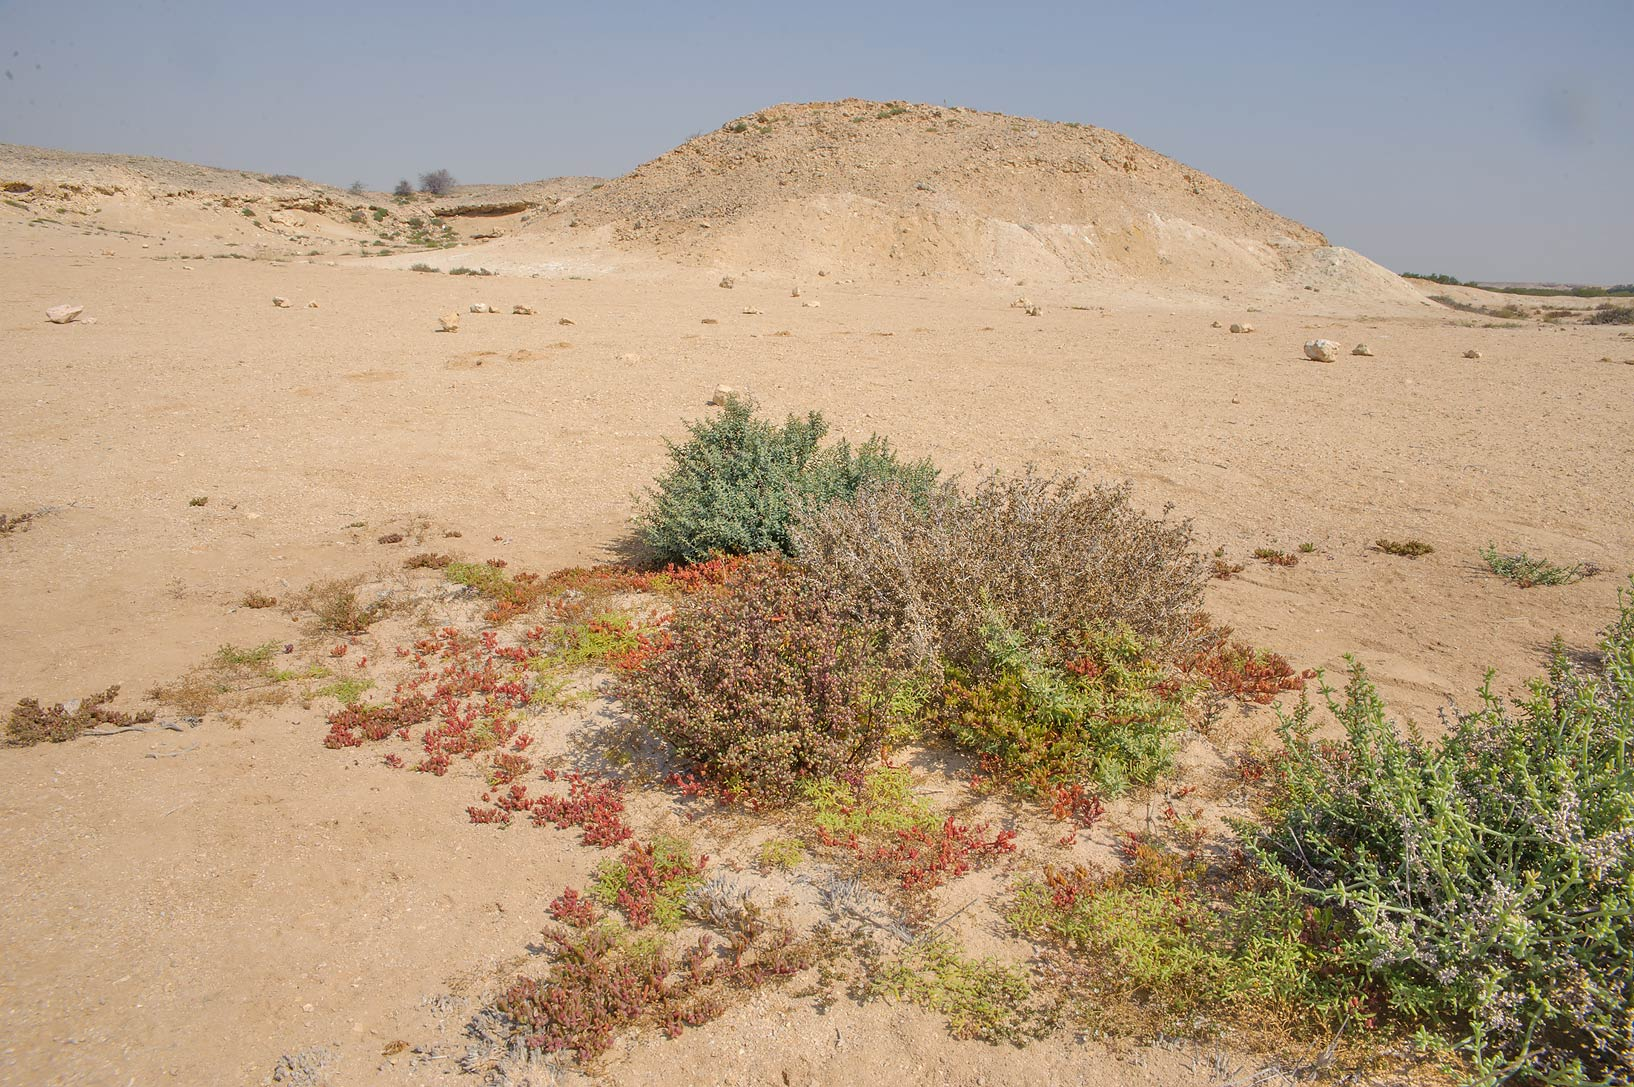 Salt tolerant plants on Purple Island (Jazirat Bin Ghanim). Al Khor, Qatar